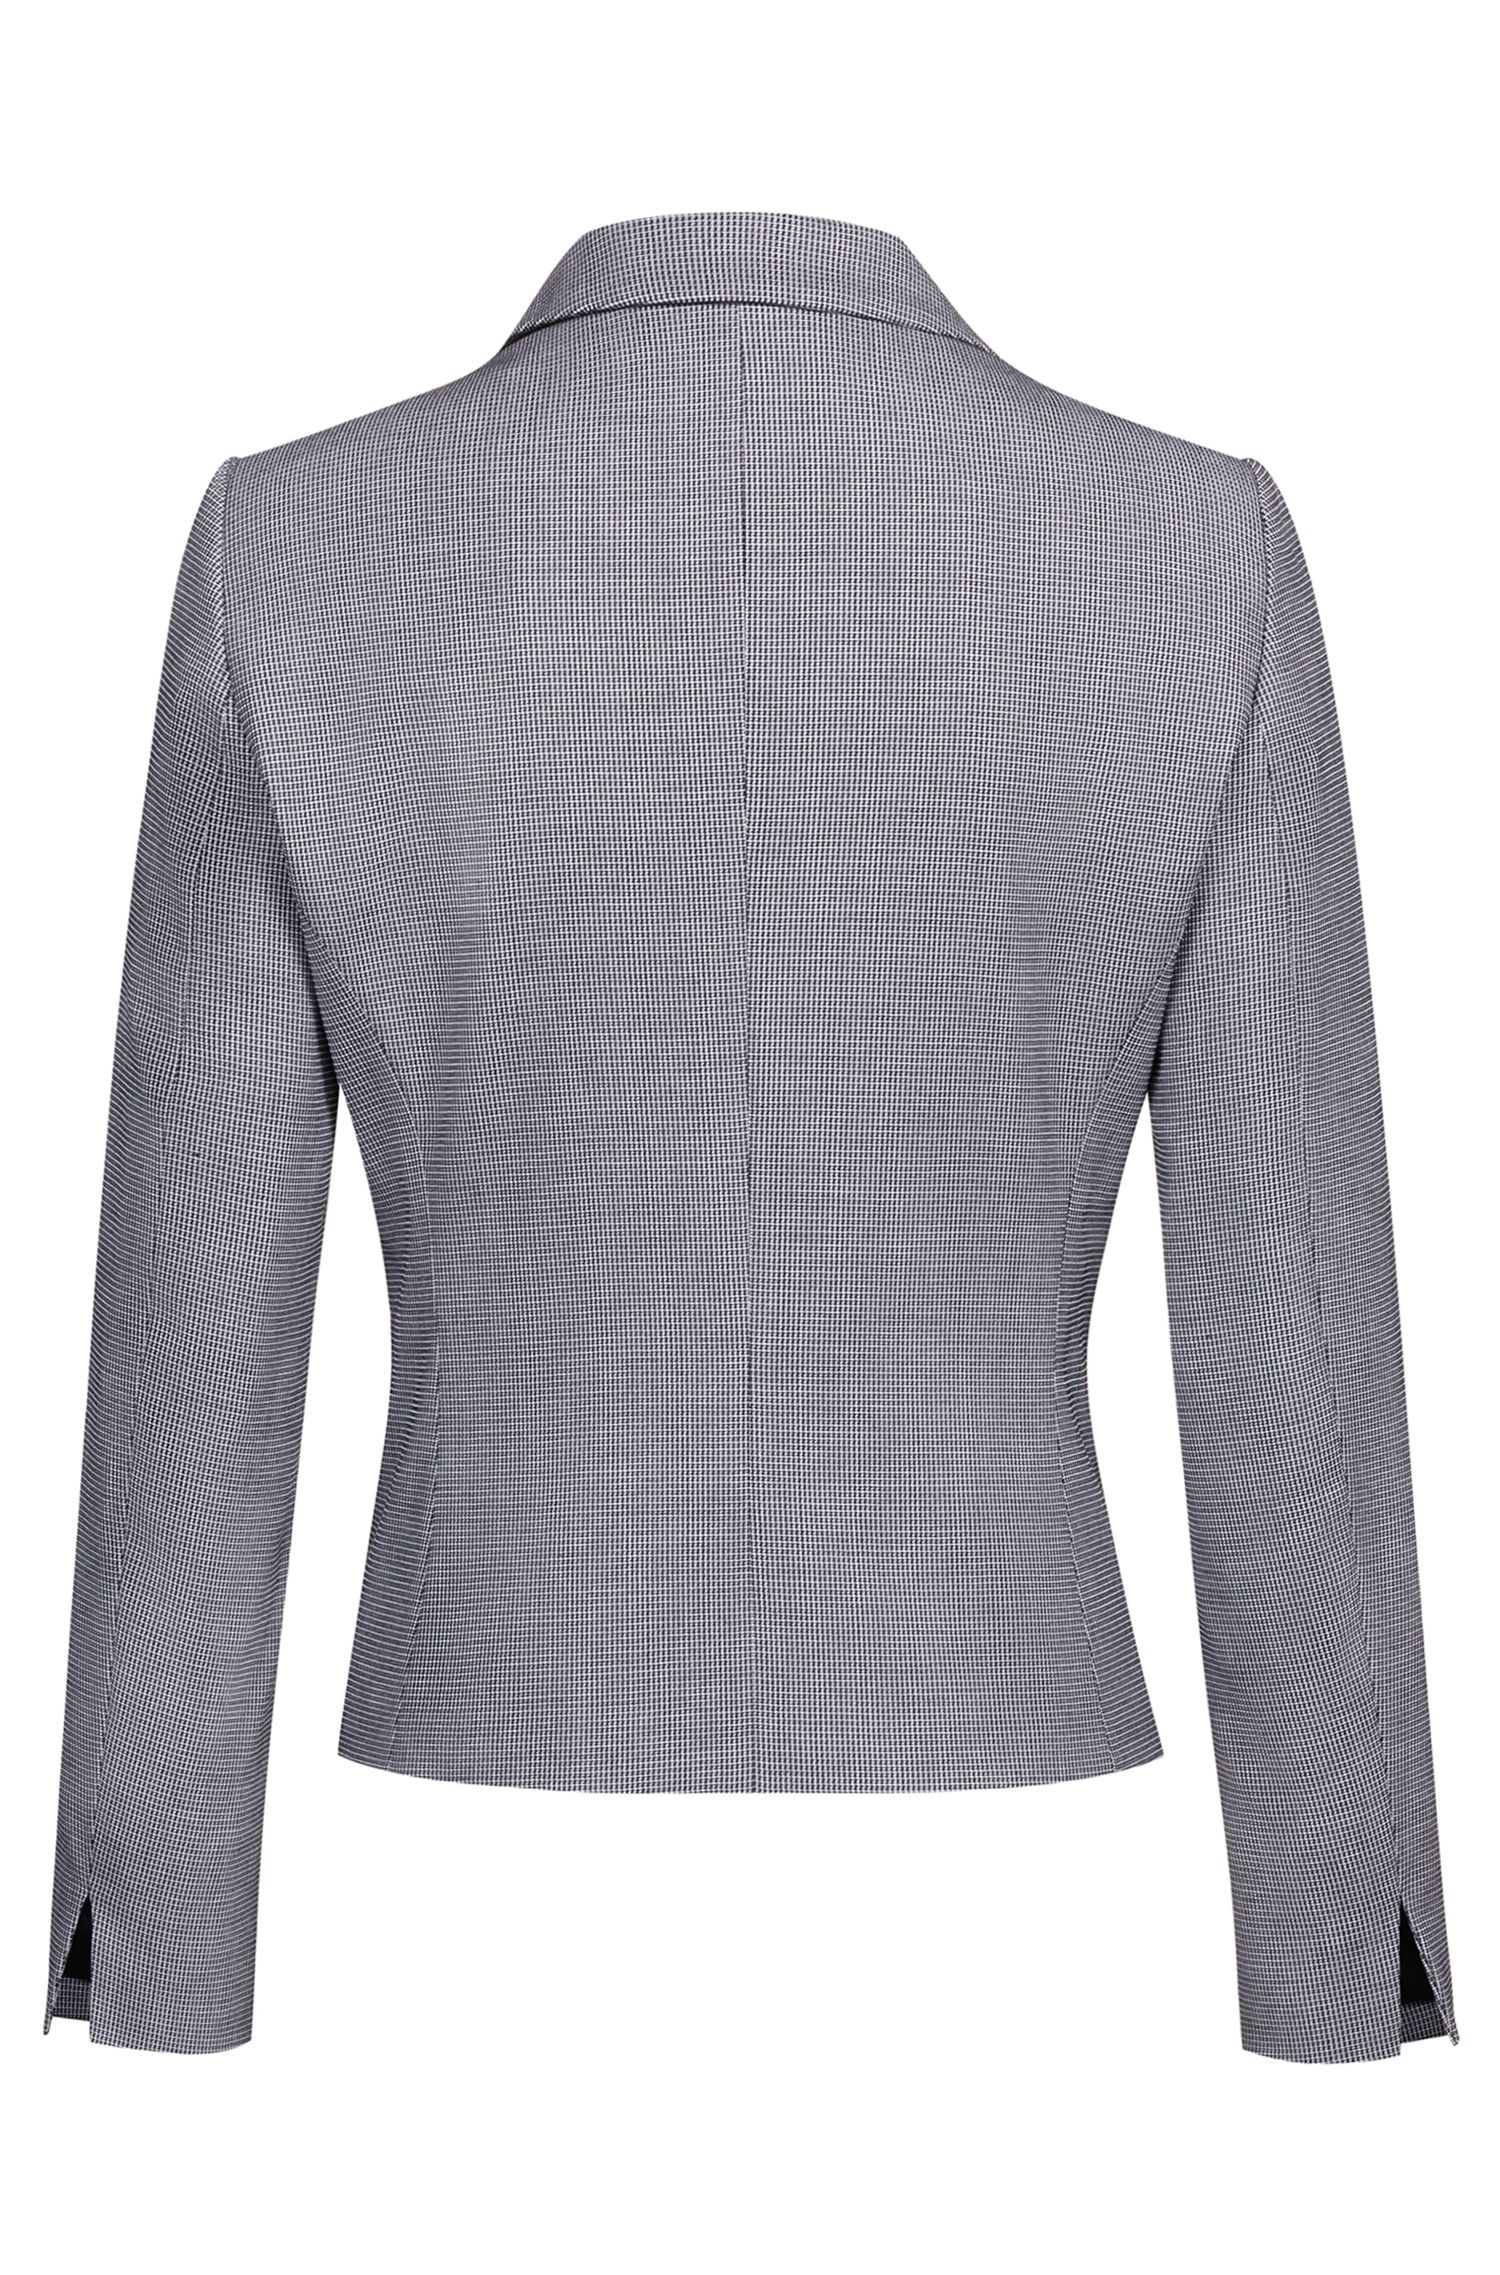 One-button jacket in patterned stretch fabric, Patterned